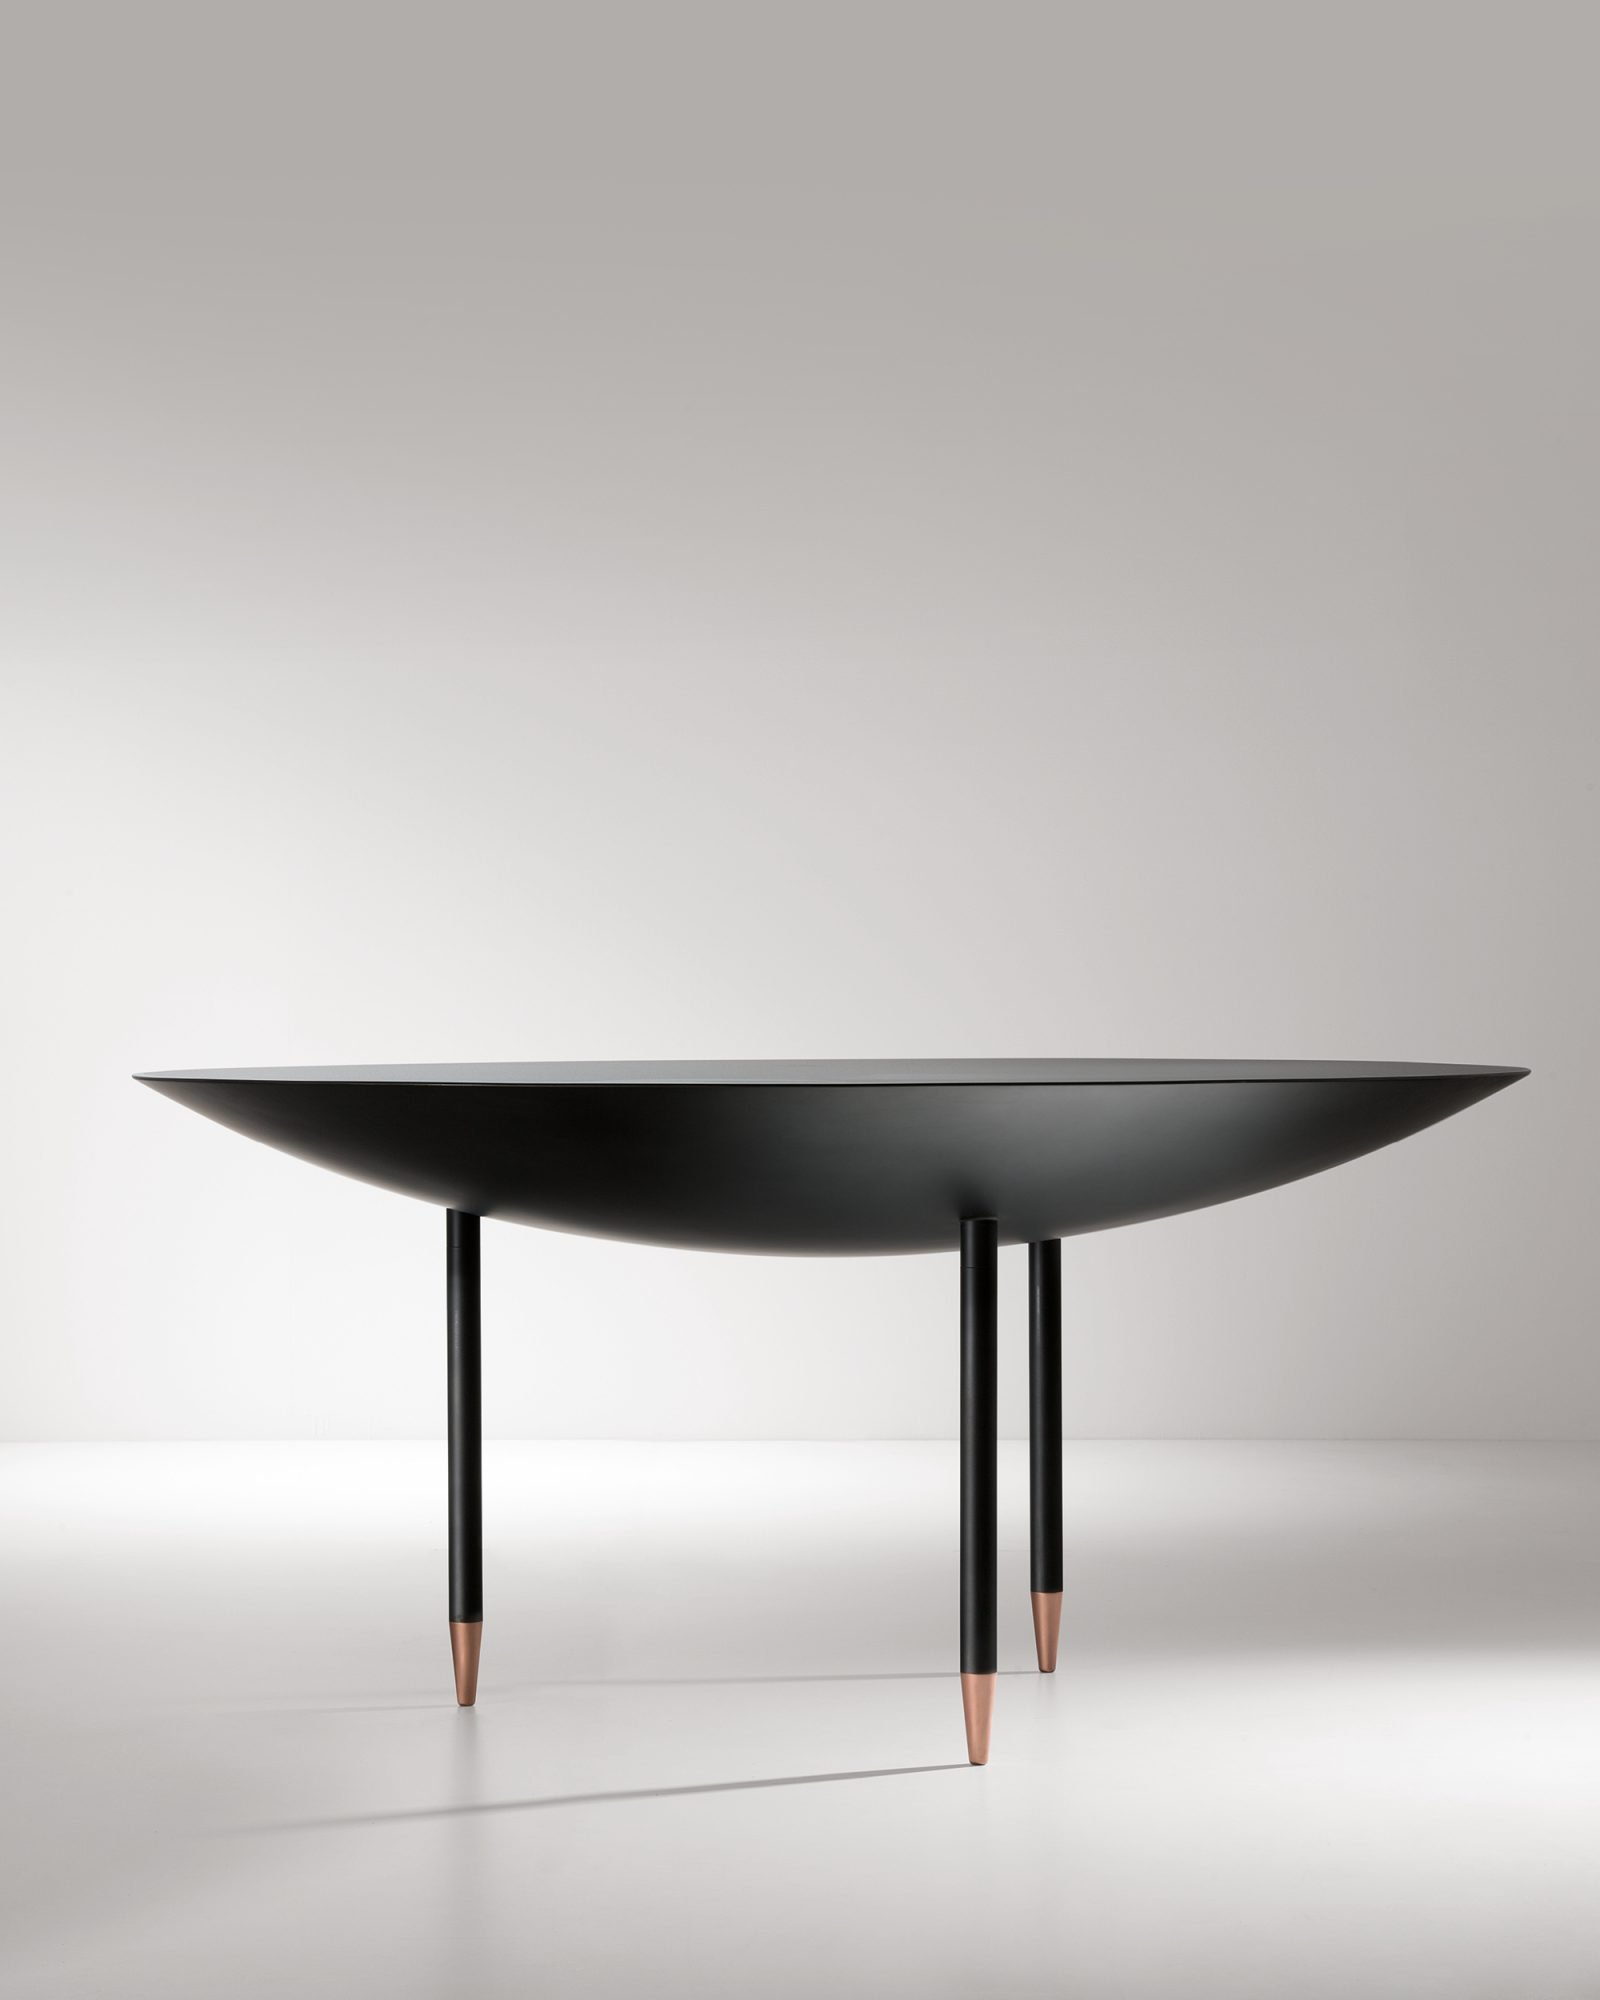 Roma Table  from De Castelli, designed by Minelli Fossati